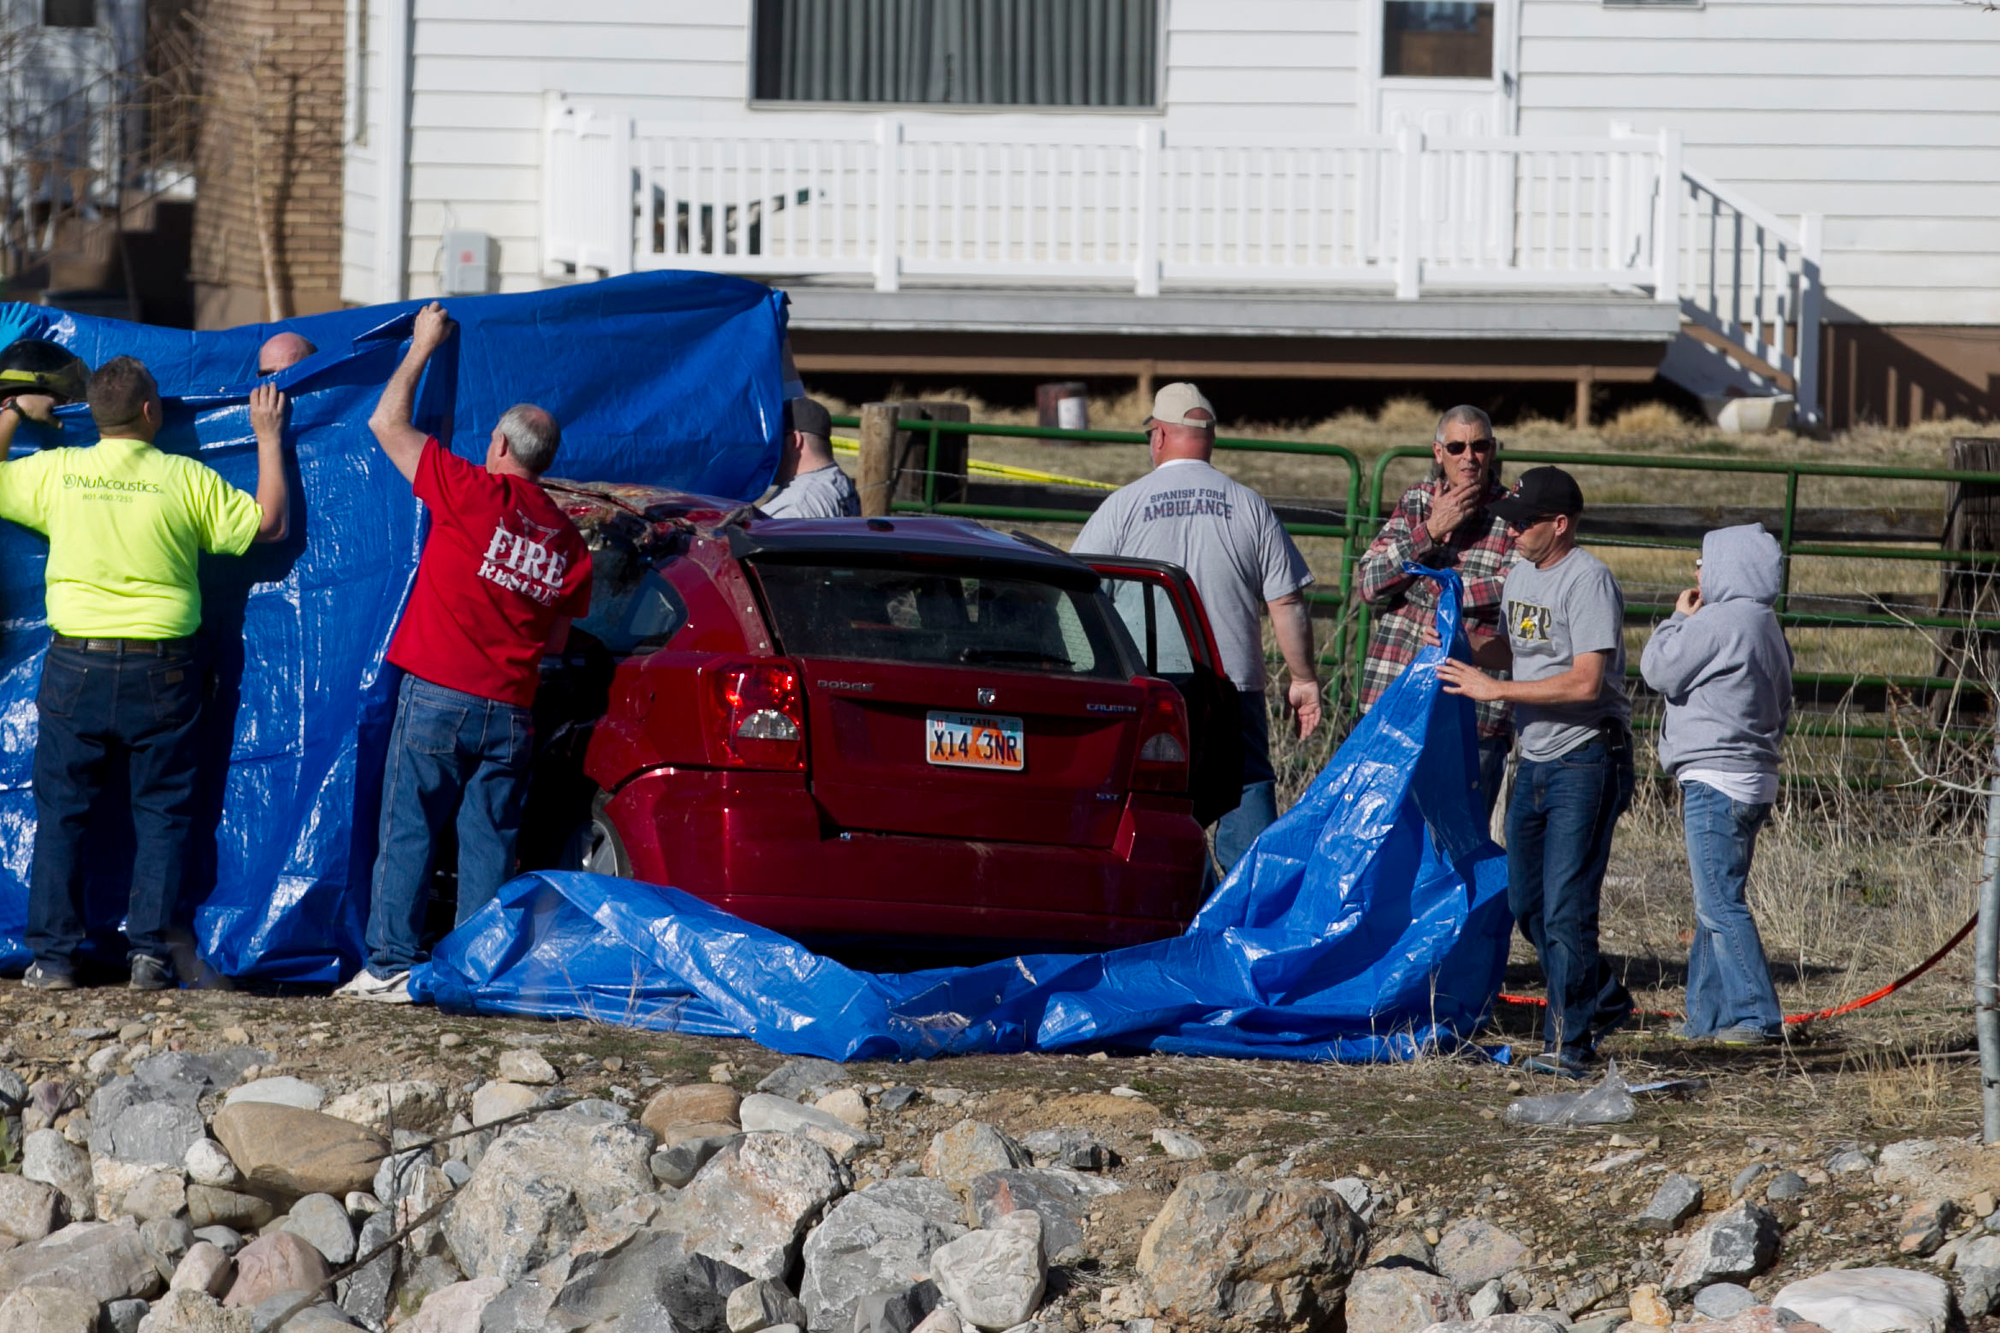 In this March 7, 2015 photo, officials respond to a report of a car crash in a river in Spanish Fork, Utah